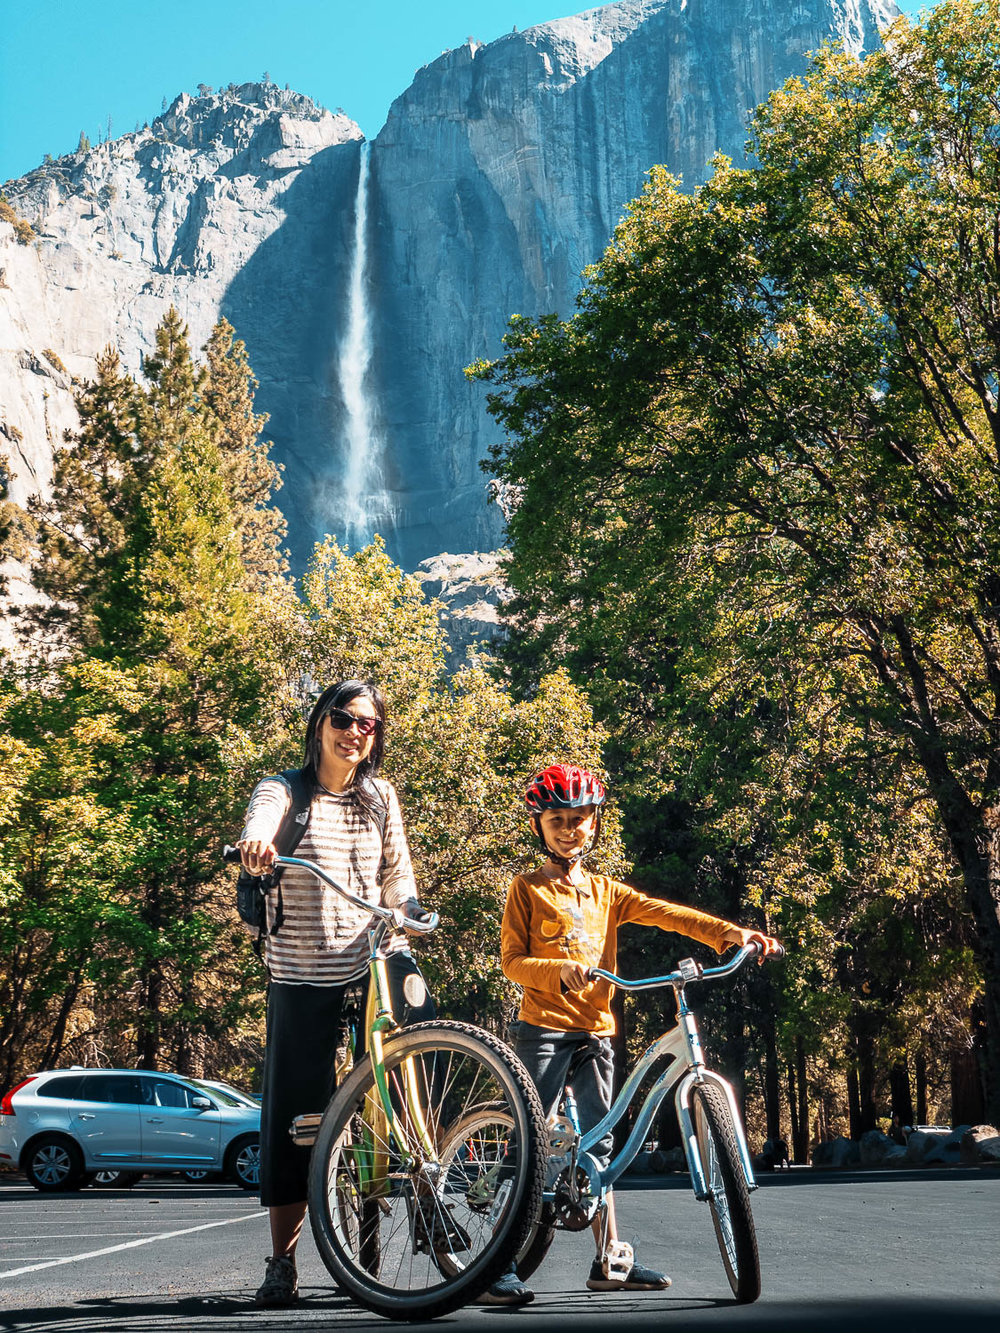 My wife and son in front of Yosemite Falls. Prolost Geartrain GT10 profile, all processing done in Lightroom CC for iOS.